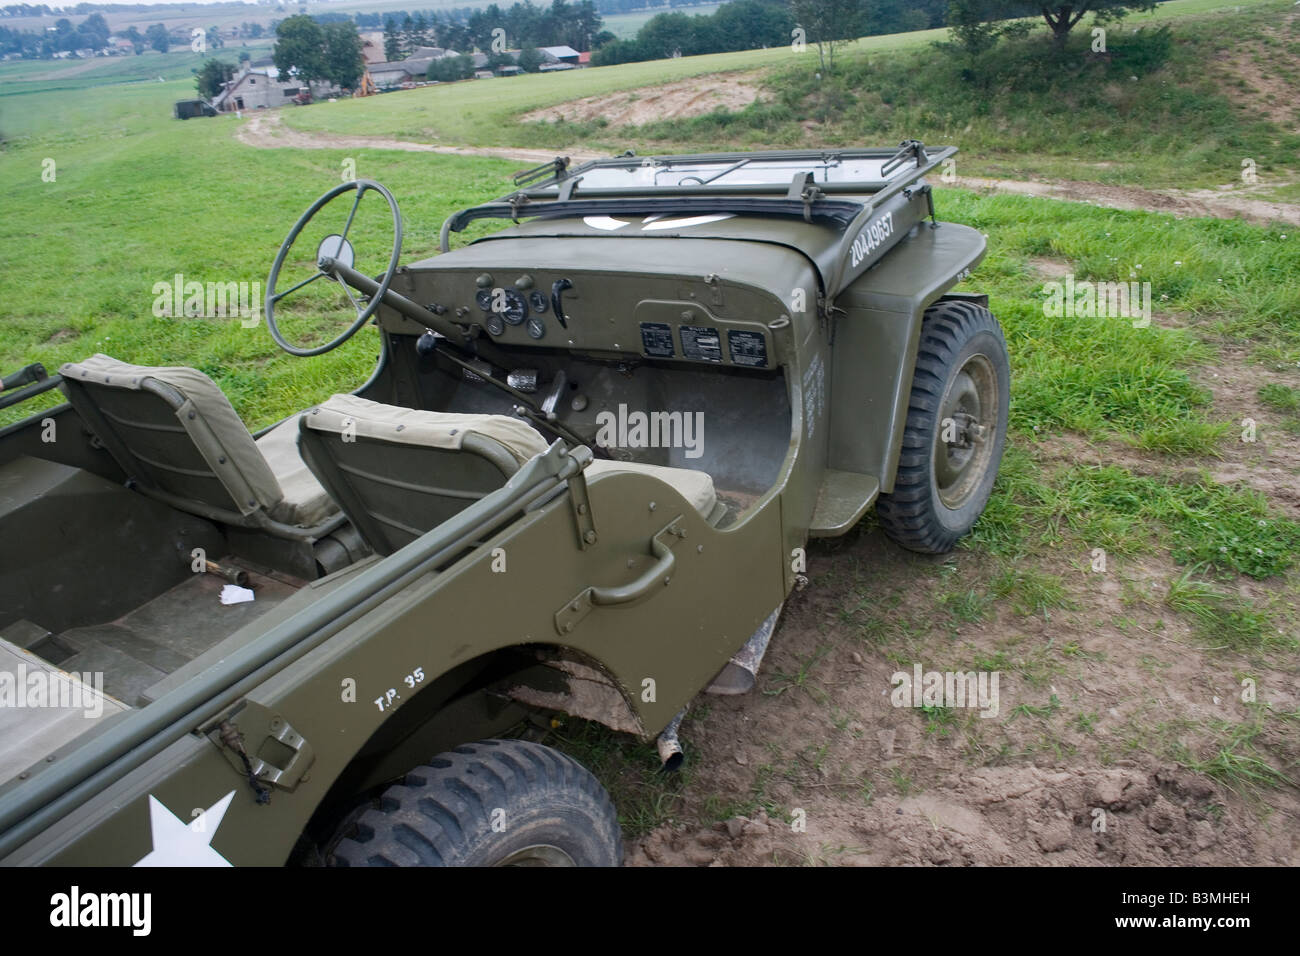 Jeep mb jeep : Popular US military vehicle Willys MB jeep most popular during ...